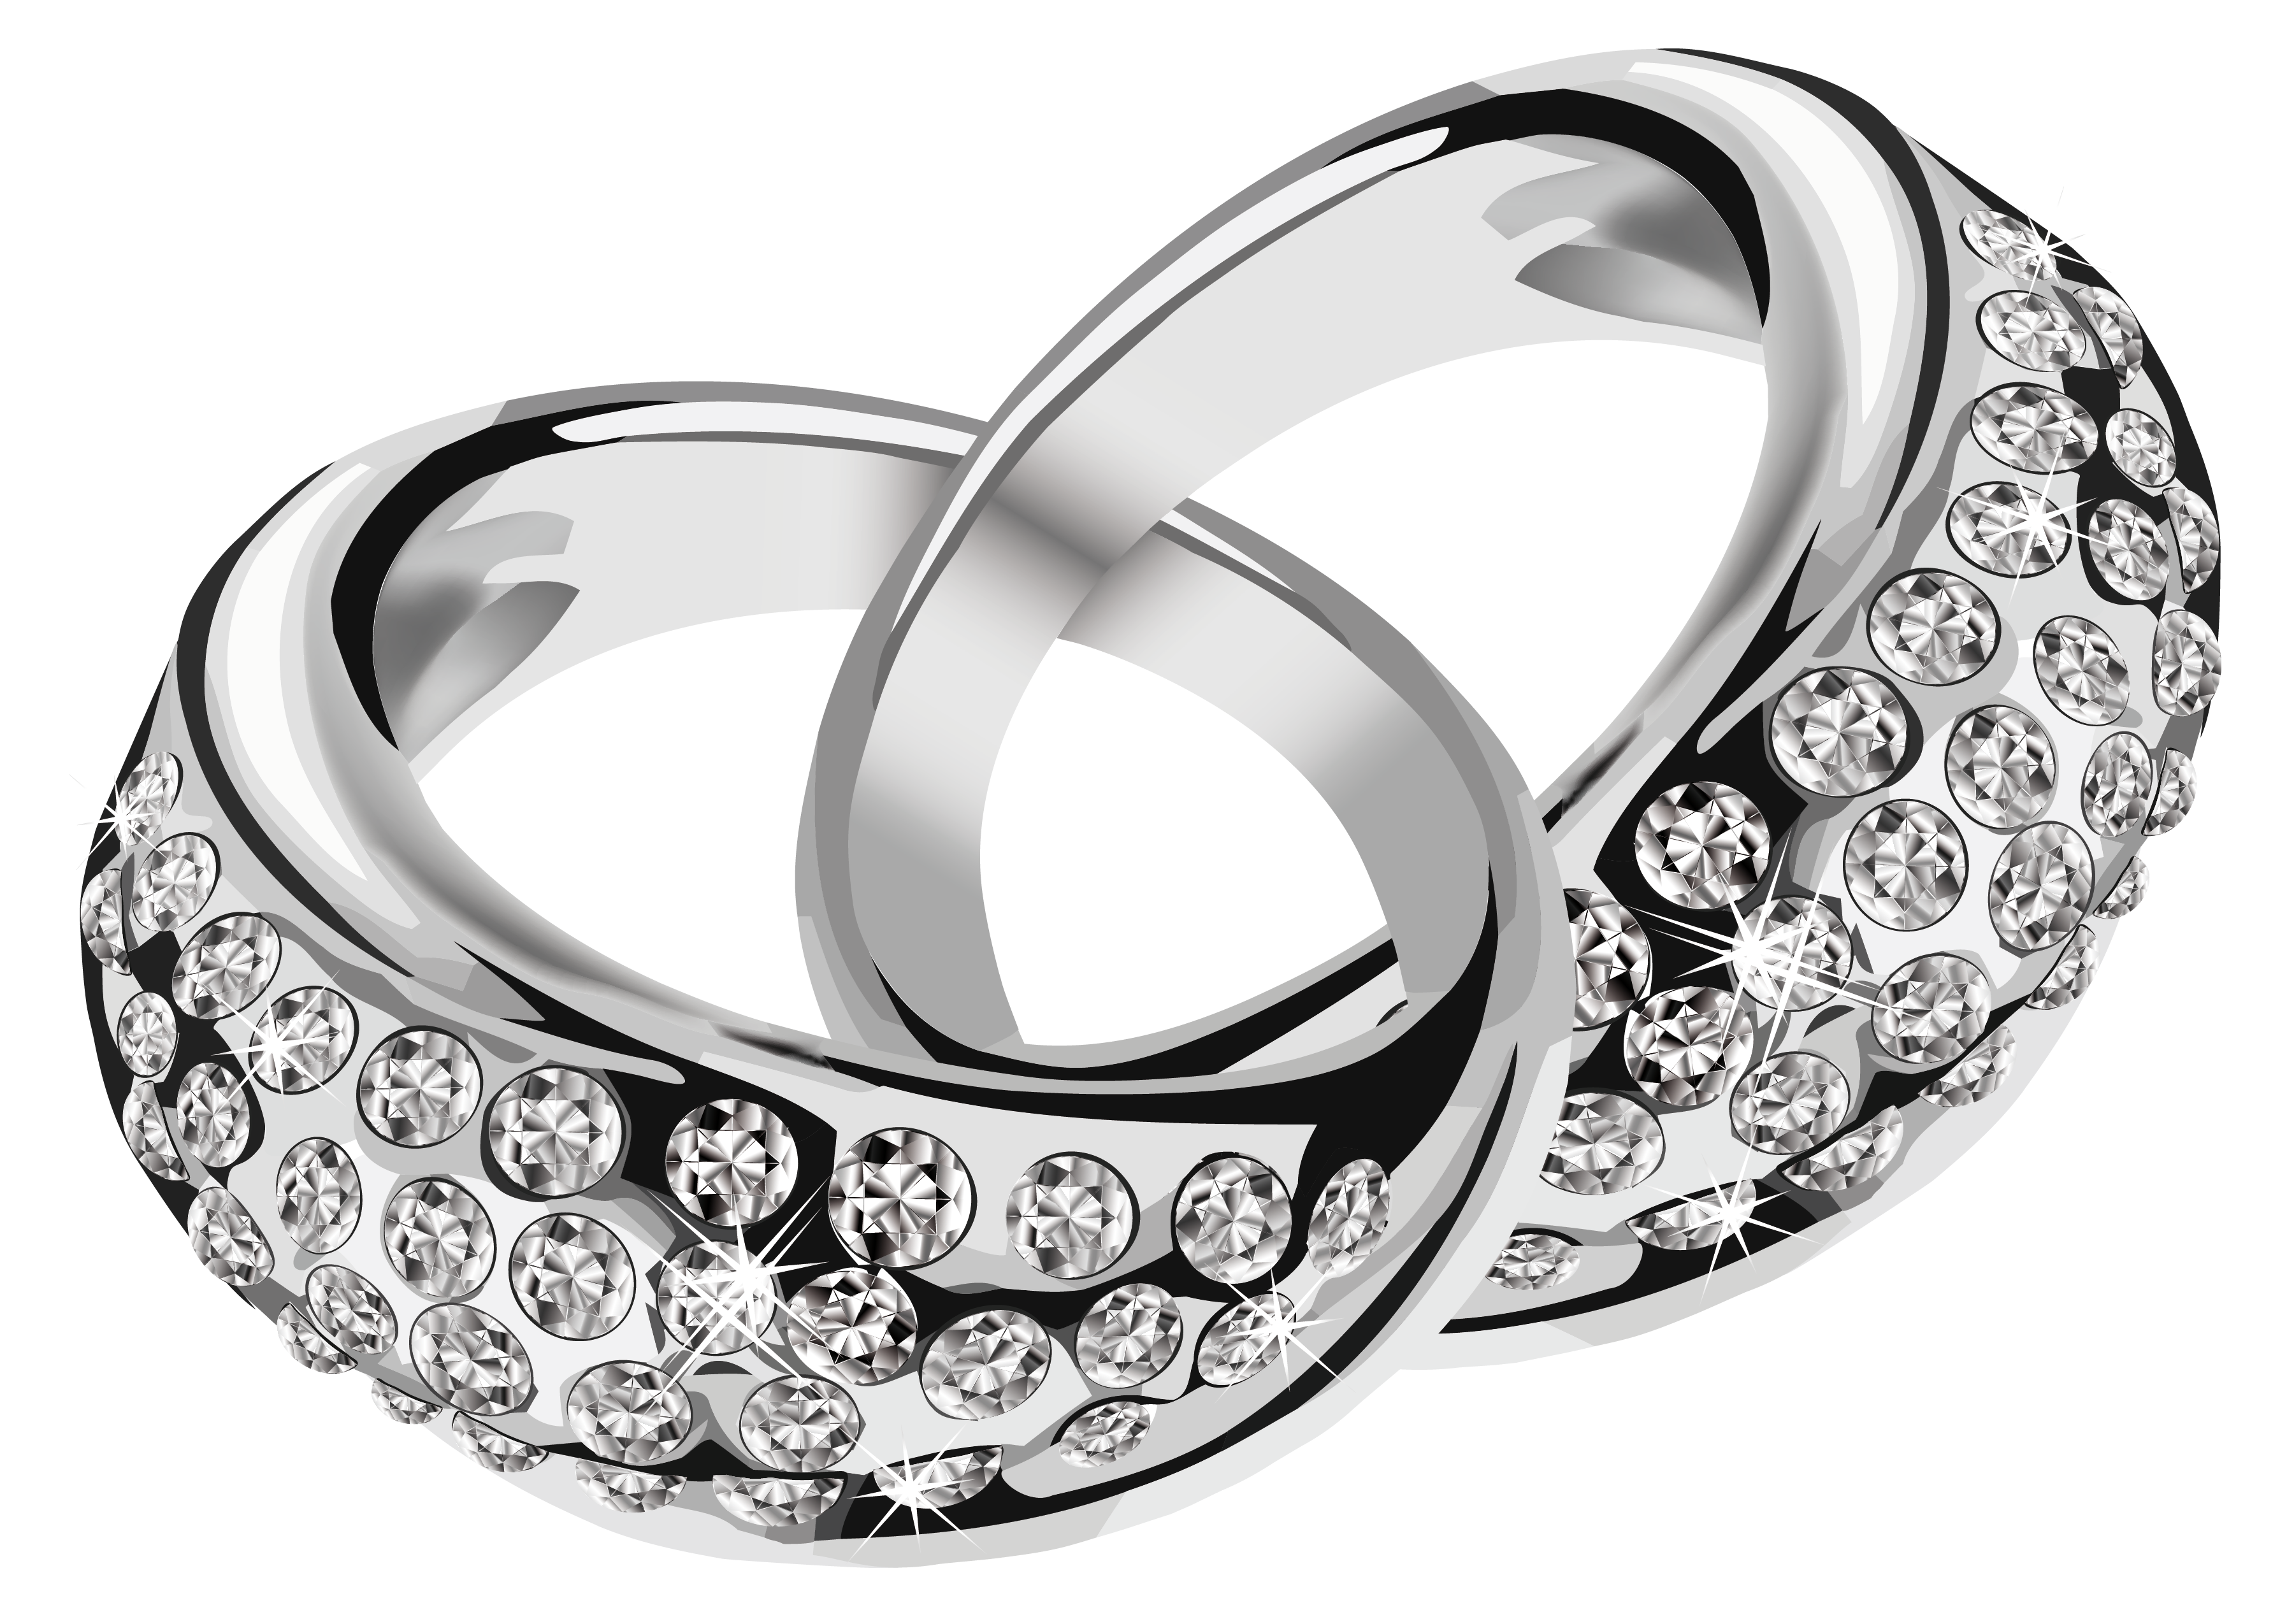 Silver rings with diamonds. Jewelry clip svg transparent